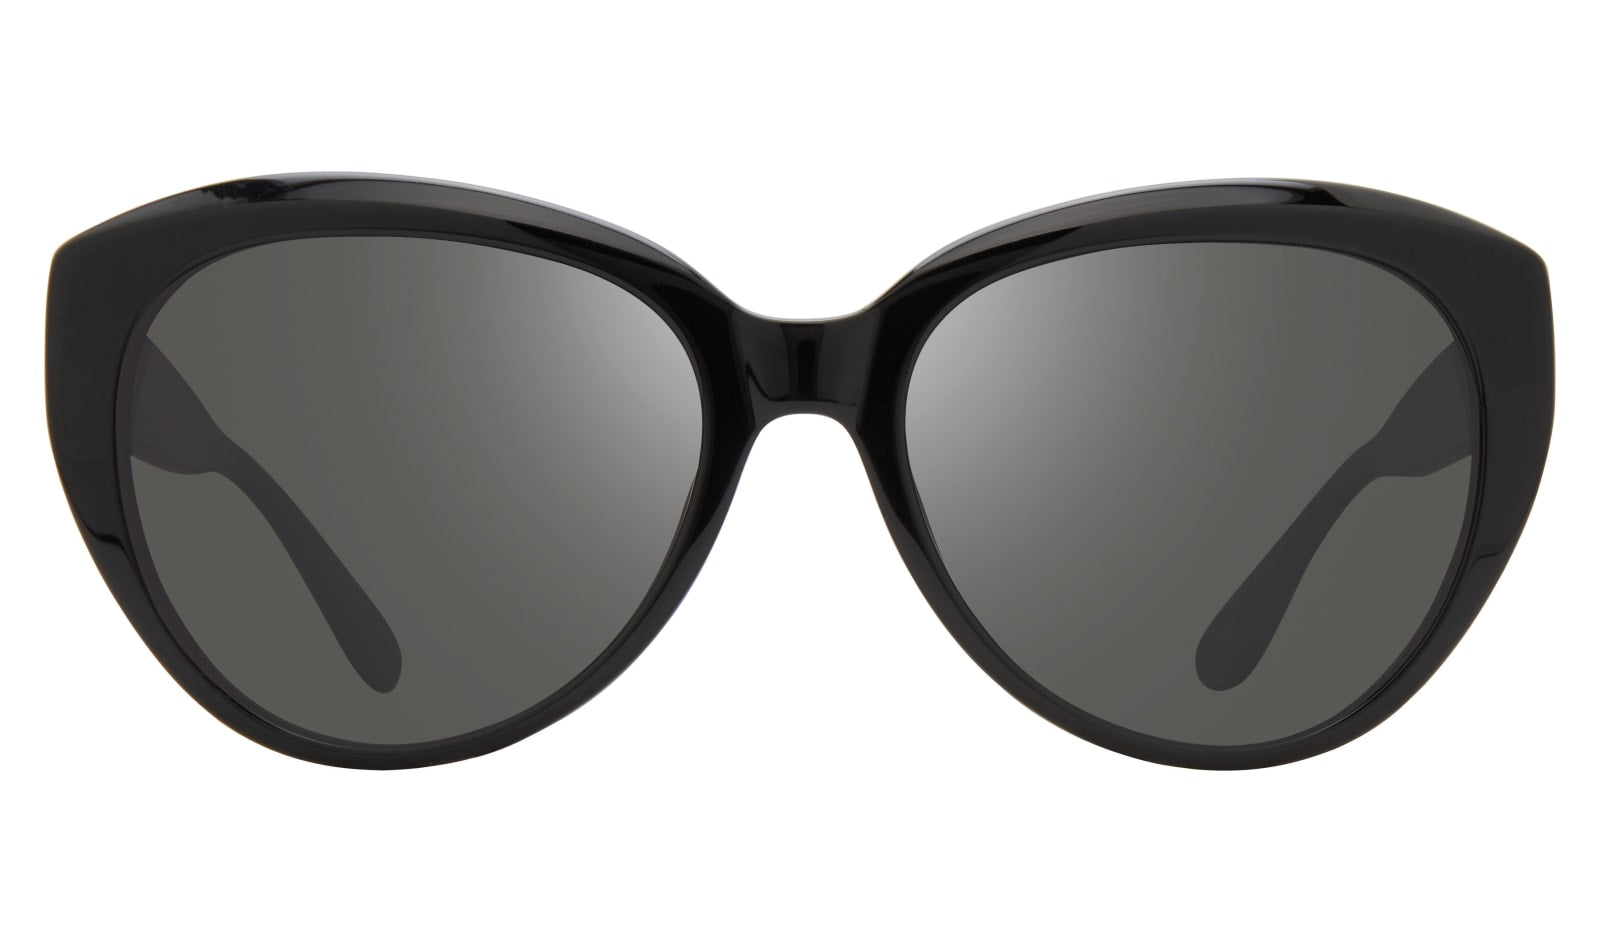 Revo - Rose 55mm Black Sunglasses / Graphite Lenses